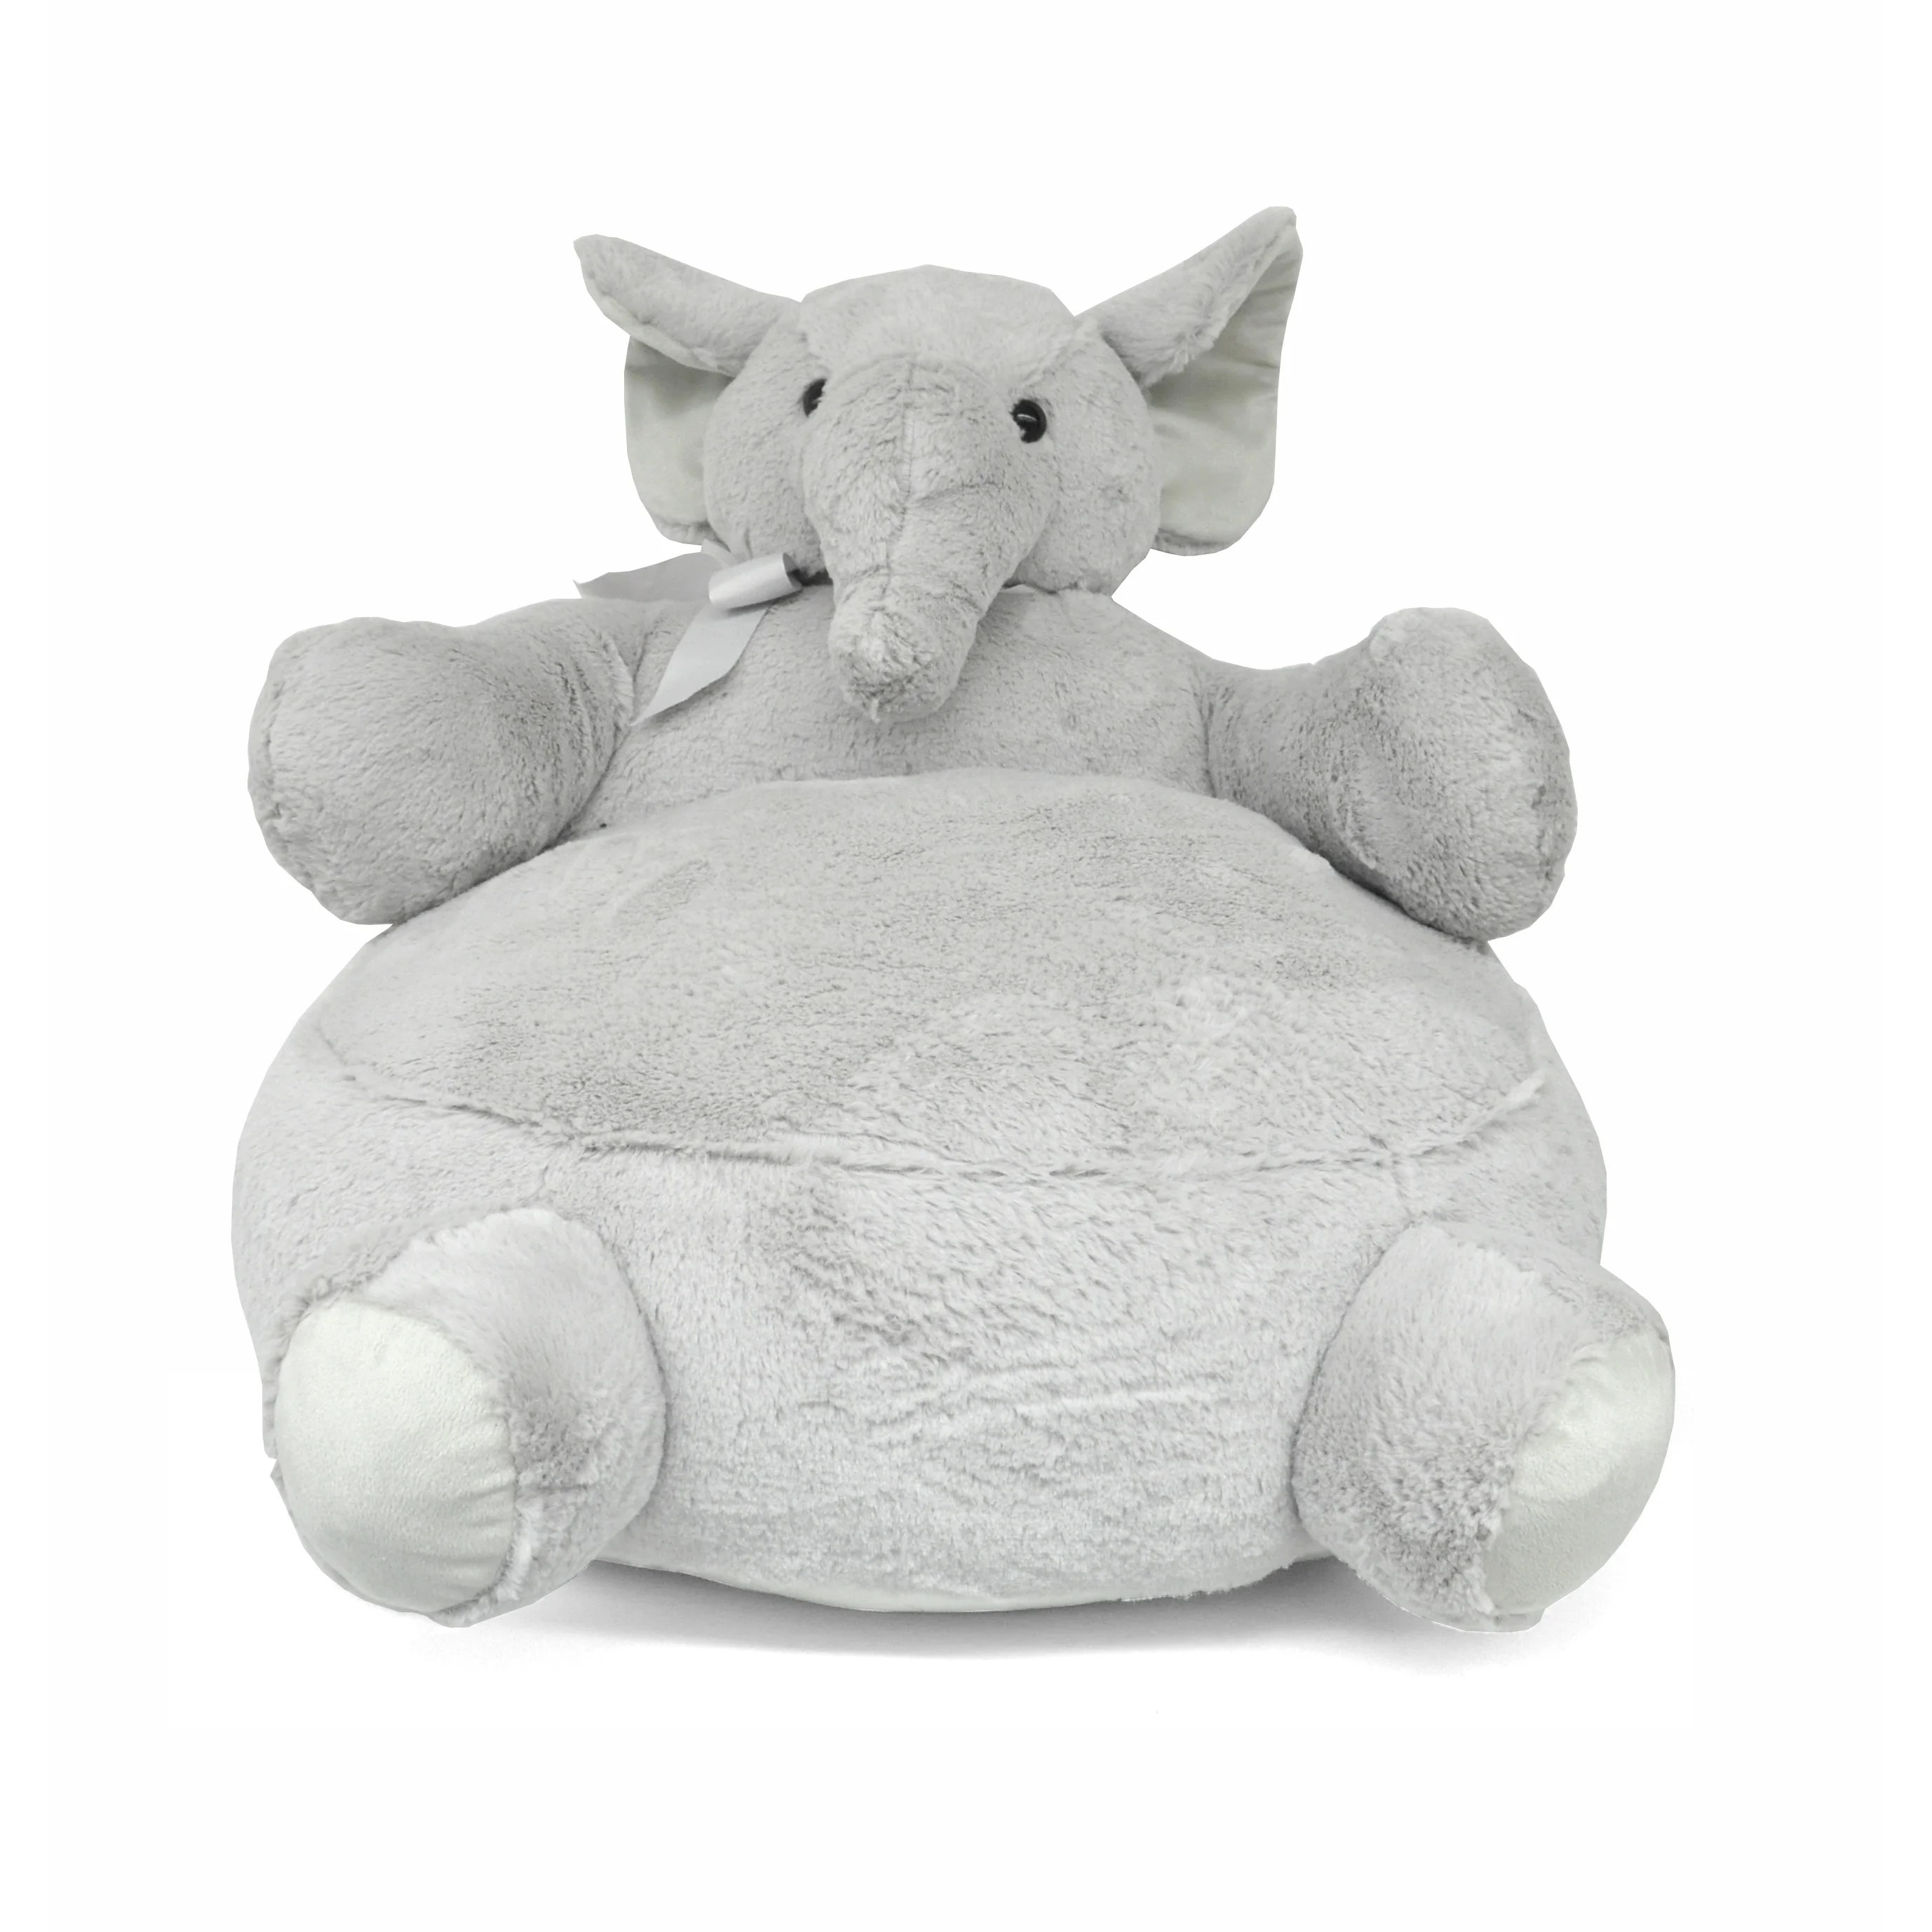 Plush Toddler Chair Kids Plush Elephant Lounge Chair Large Animal Cushioned